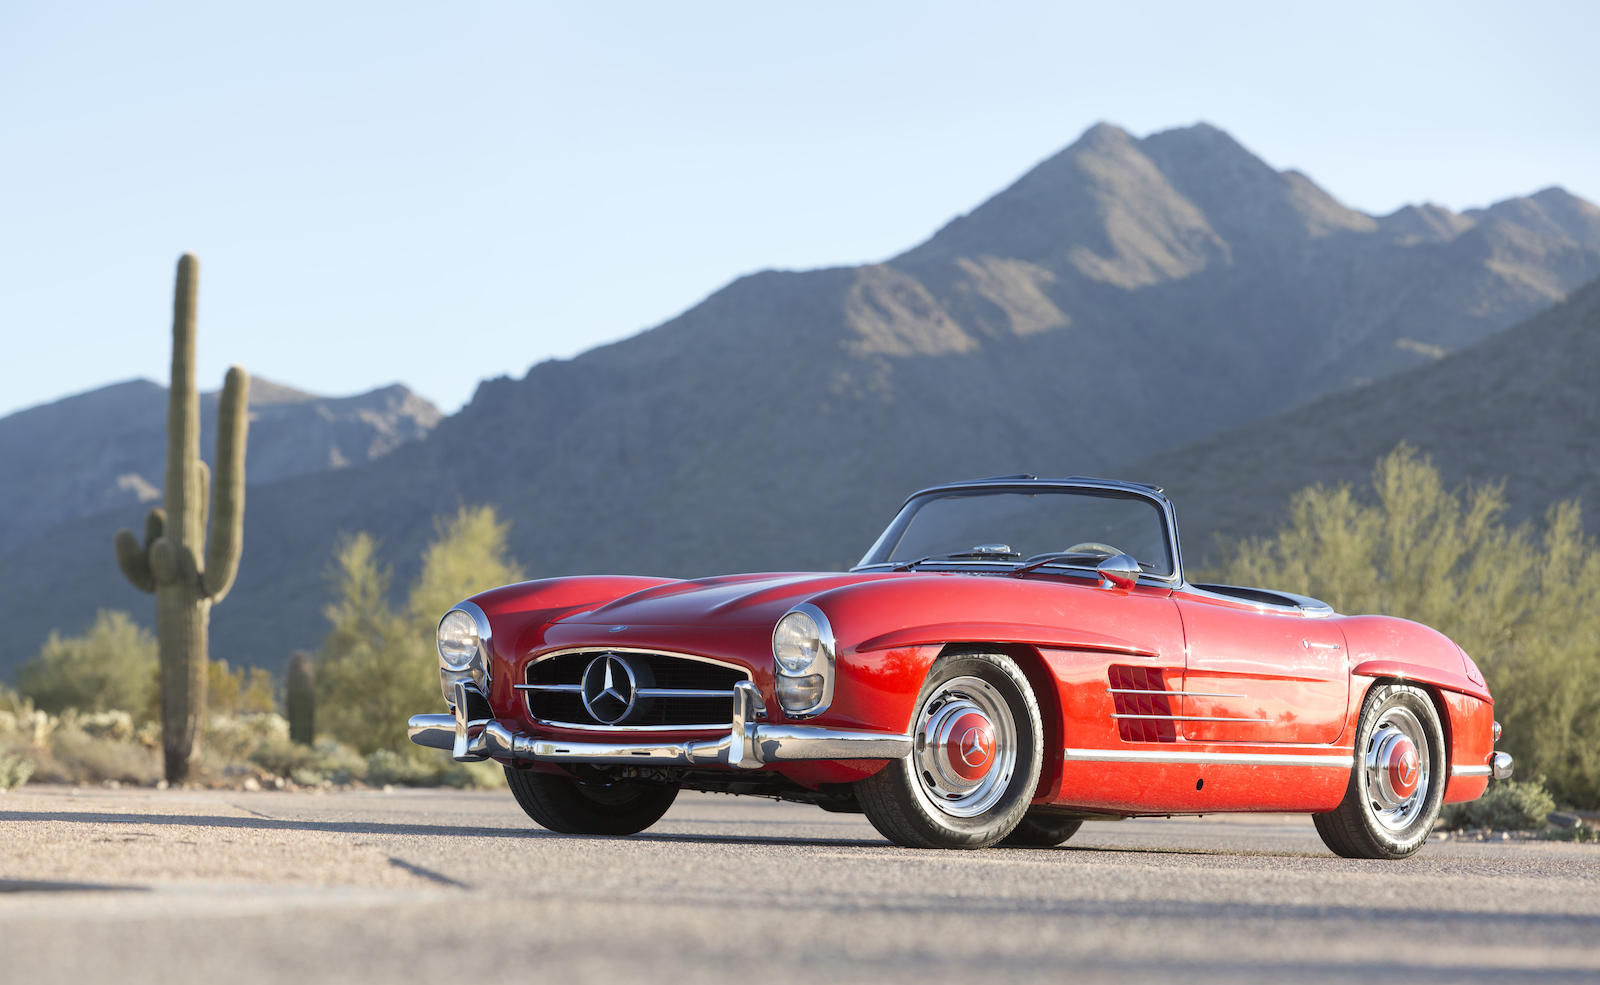 Bonhams Scottsdale Auction Sports Collector Car Center Sports